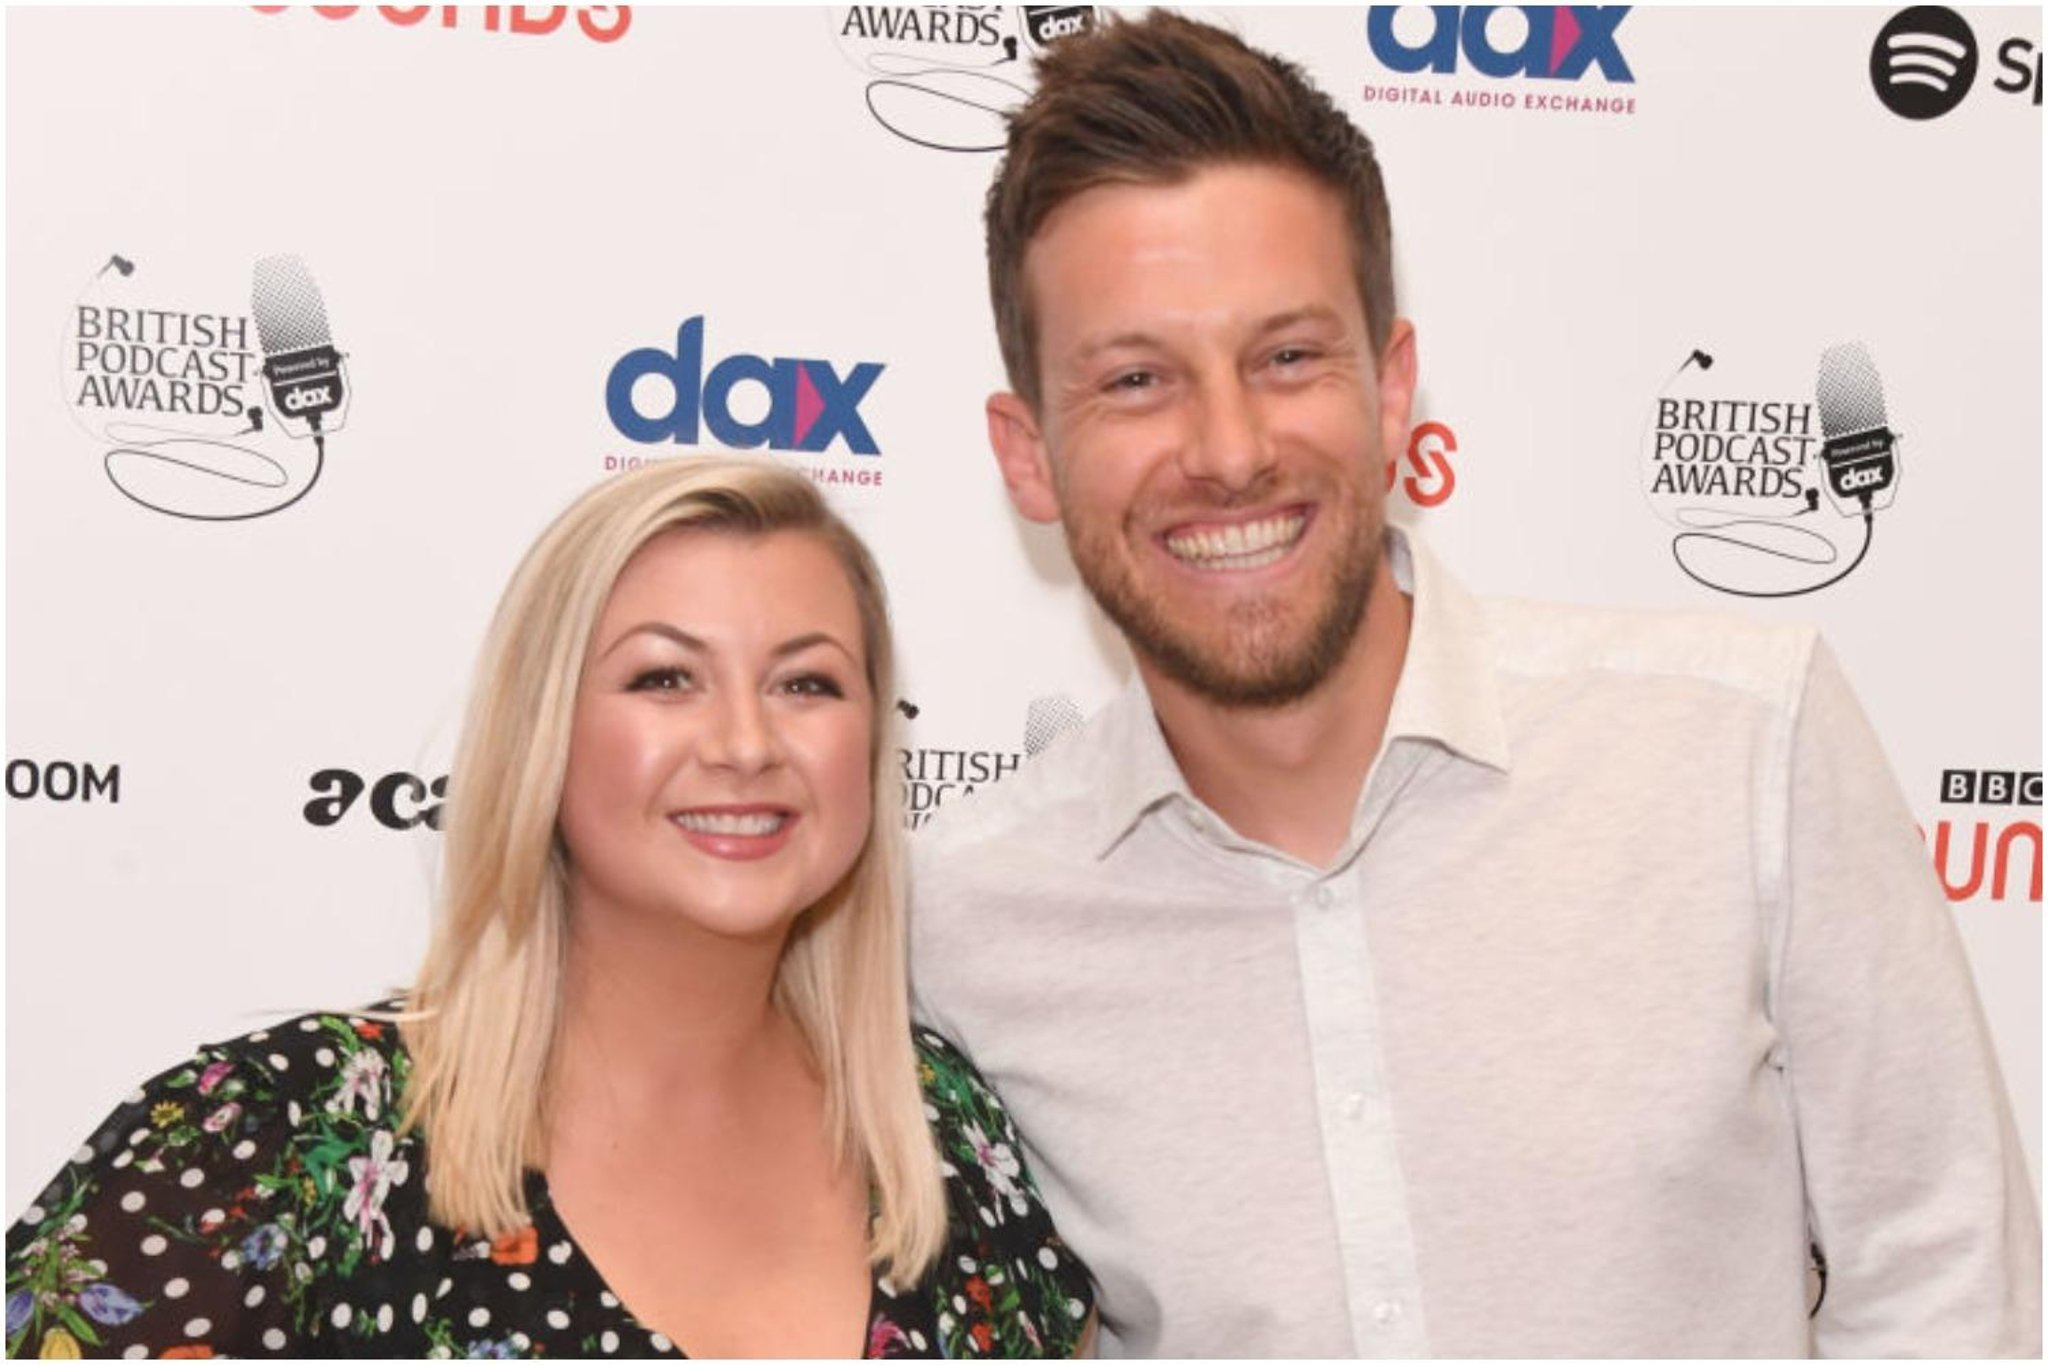 South Shields own Chris and Rosie Ramsey announce new